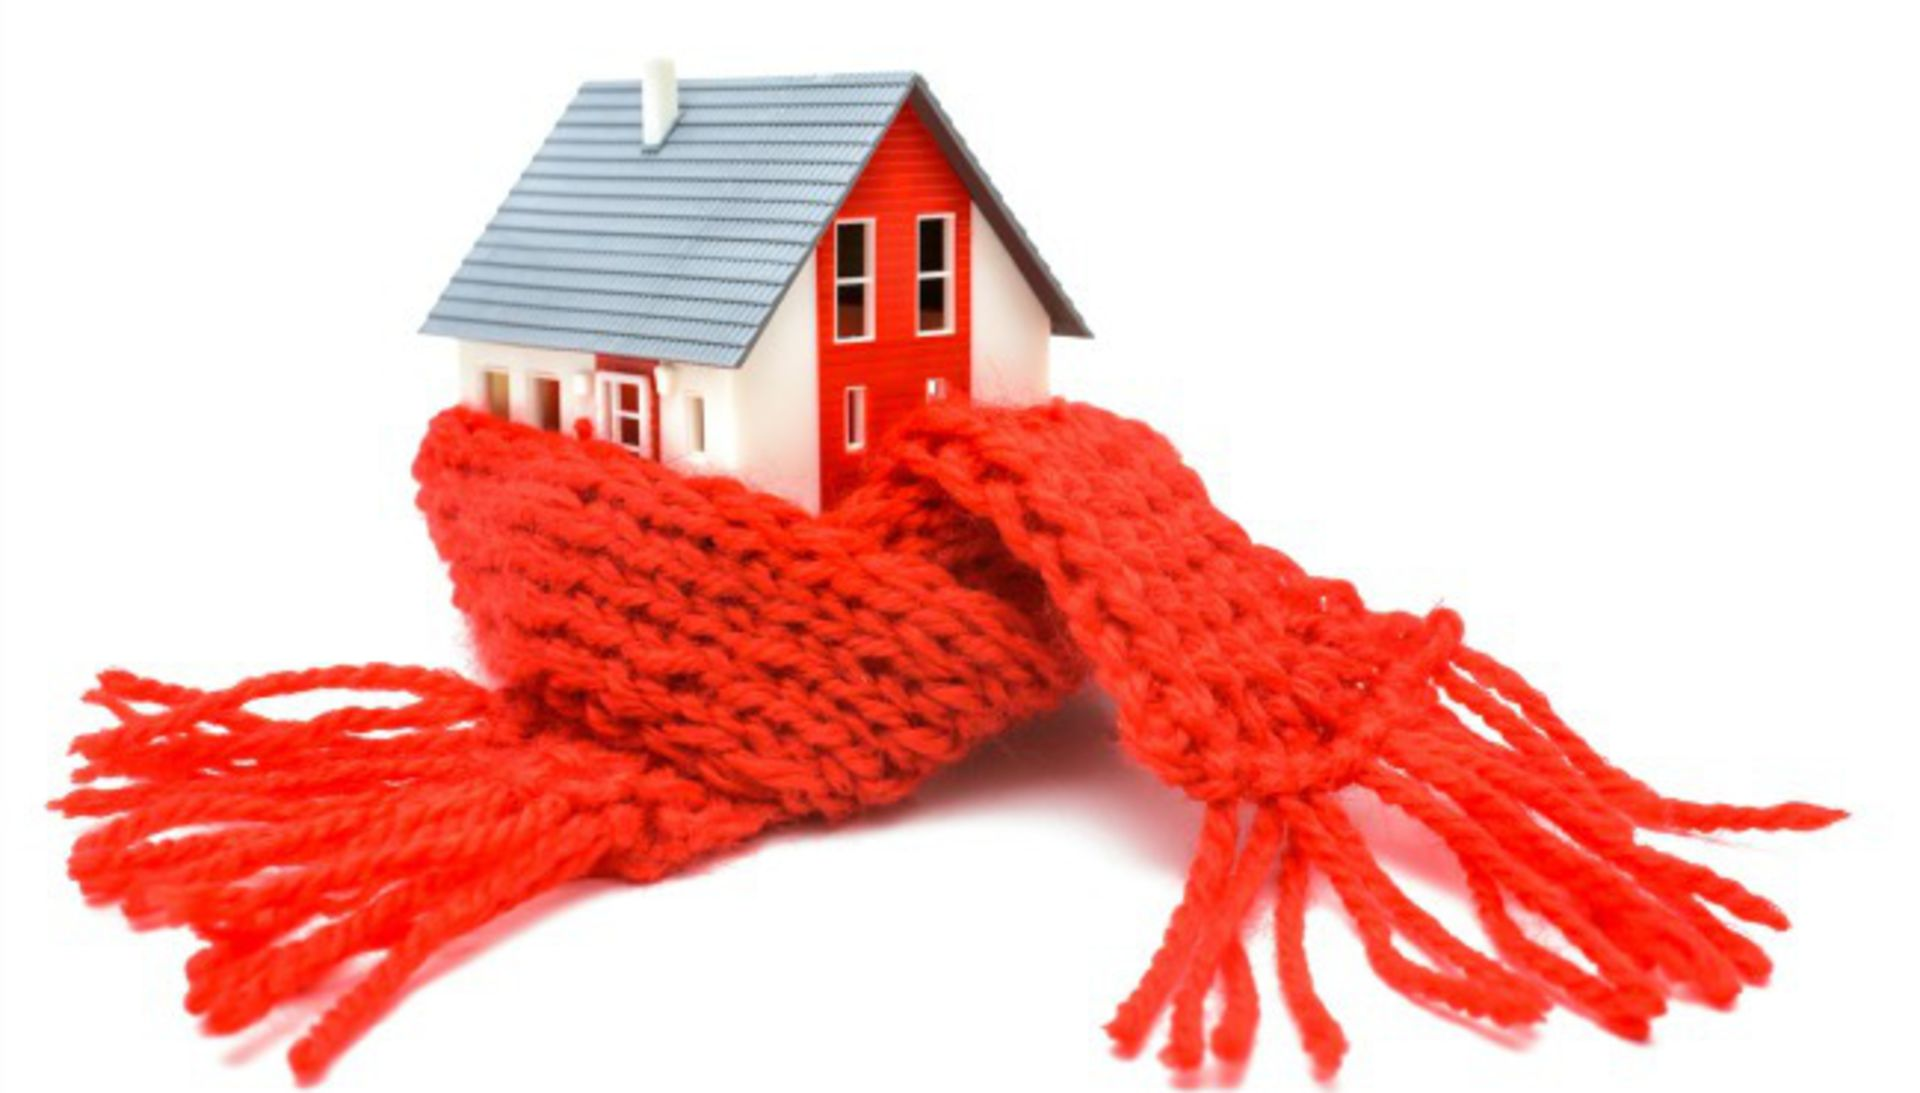 5 DIY Ways to Insulate Your Home on the Cheap